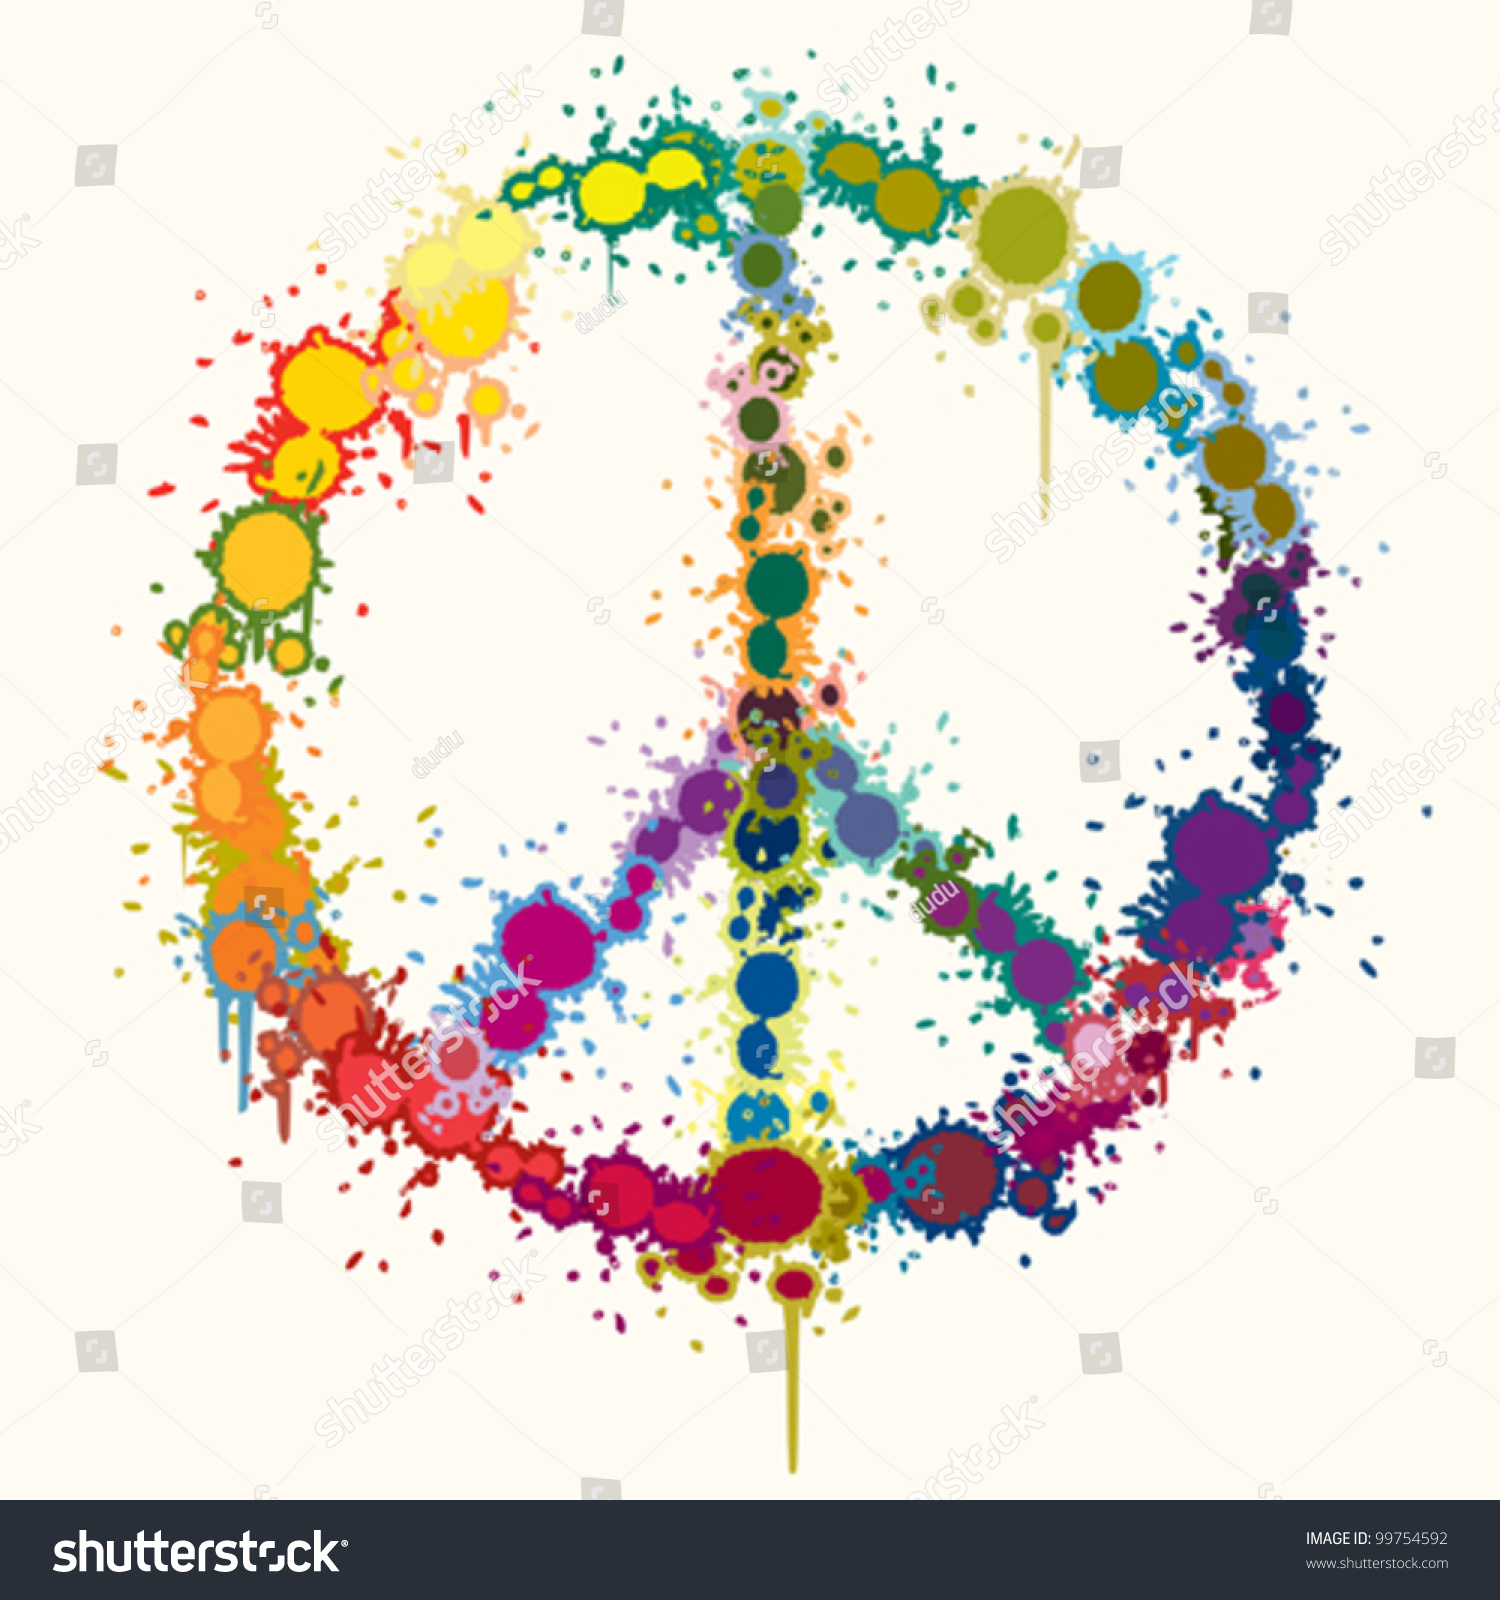 Wallpaper Of Peace: Rainbow Color Peace Sign Background Stock Vector 99754592